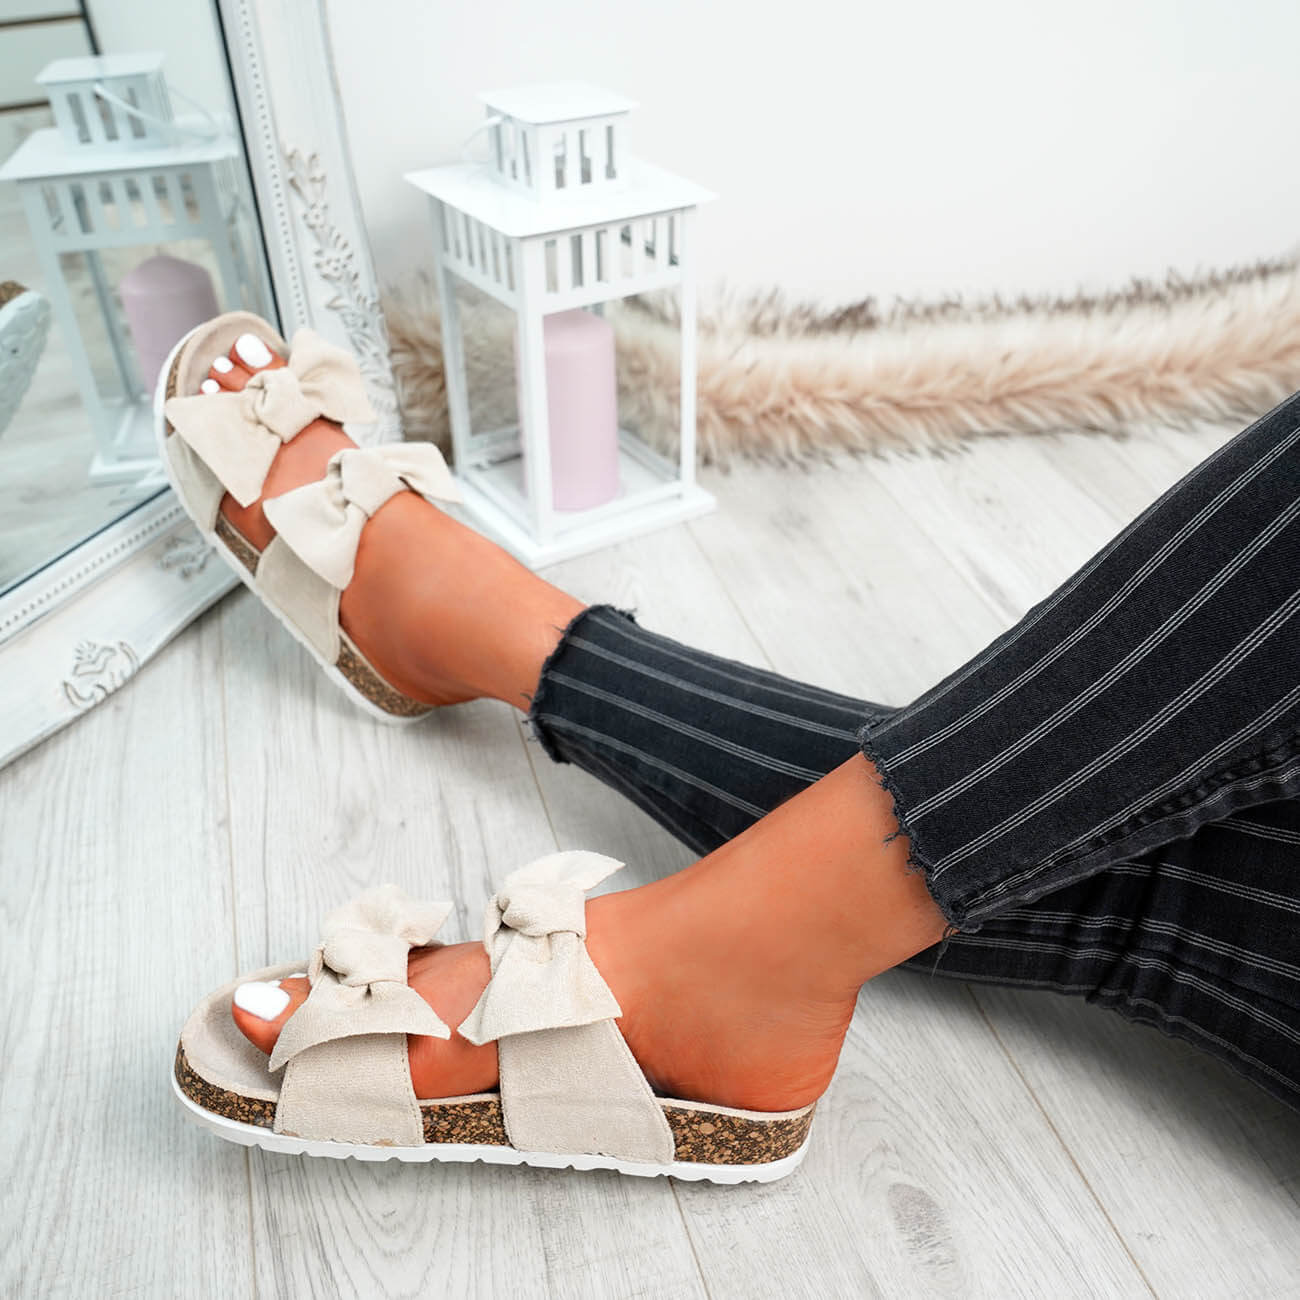 WOMENS-LADIES-PEEP-TOE-SLIP-ON-DOUBLE-BOW-FLAT-SANDALS-PARTY-CLUB-SUMMER-SHOES thumbnail 8